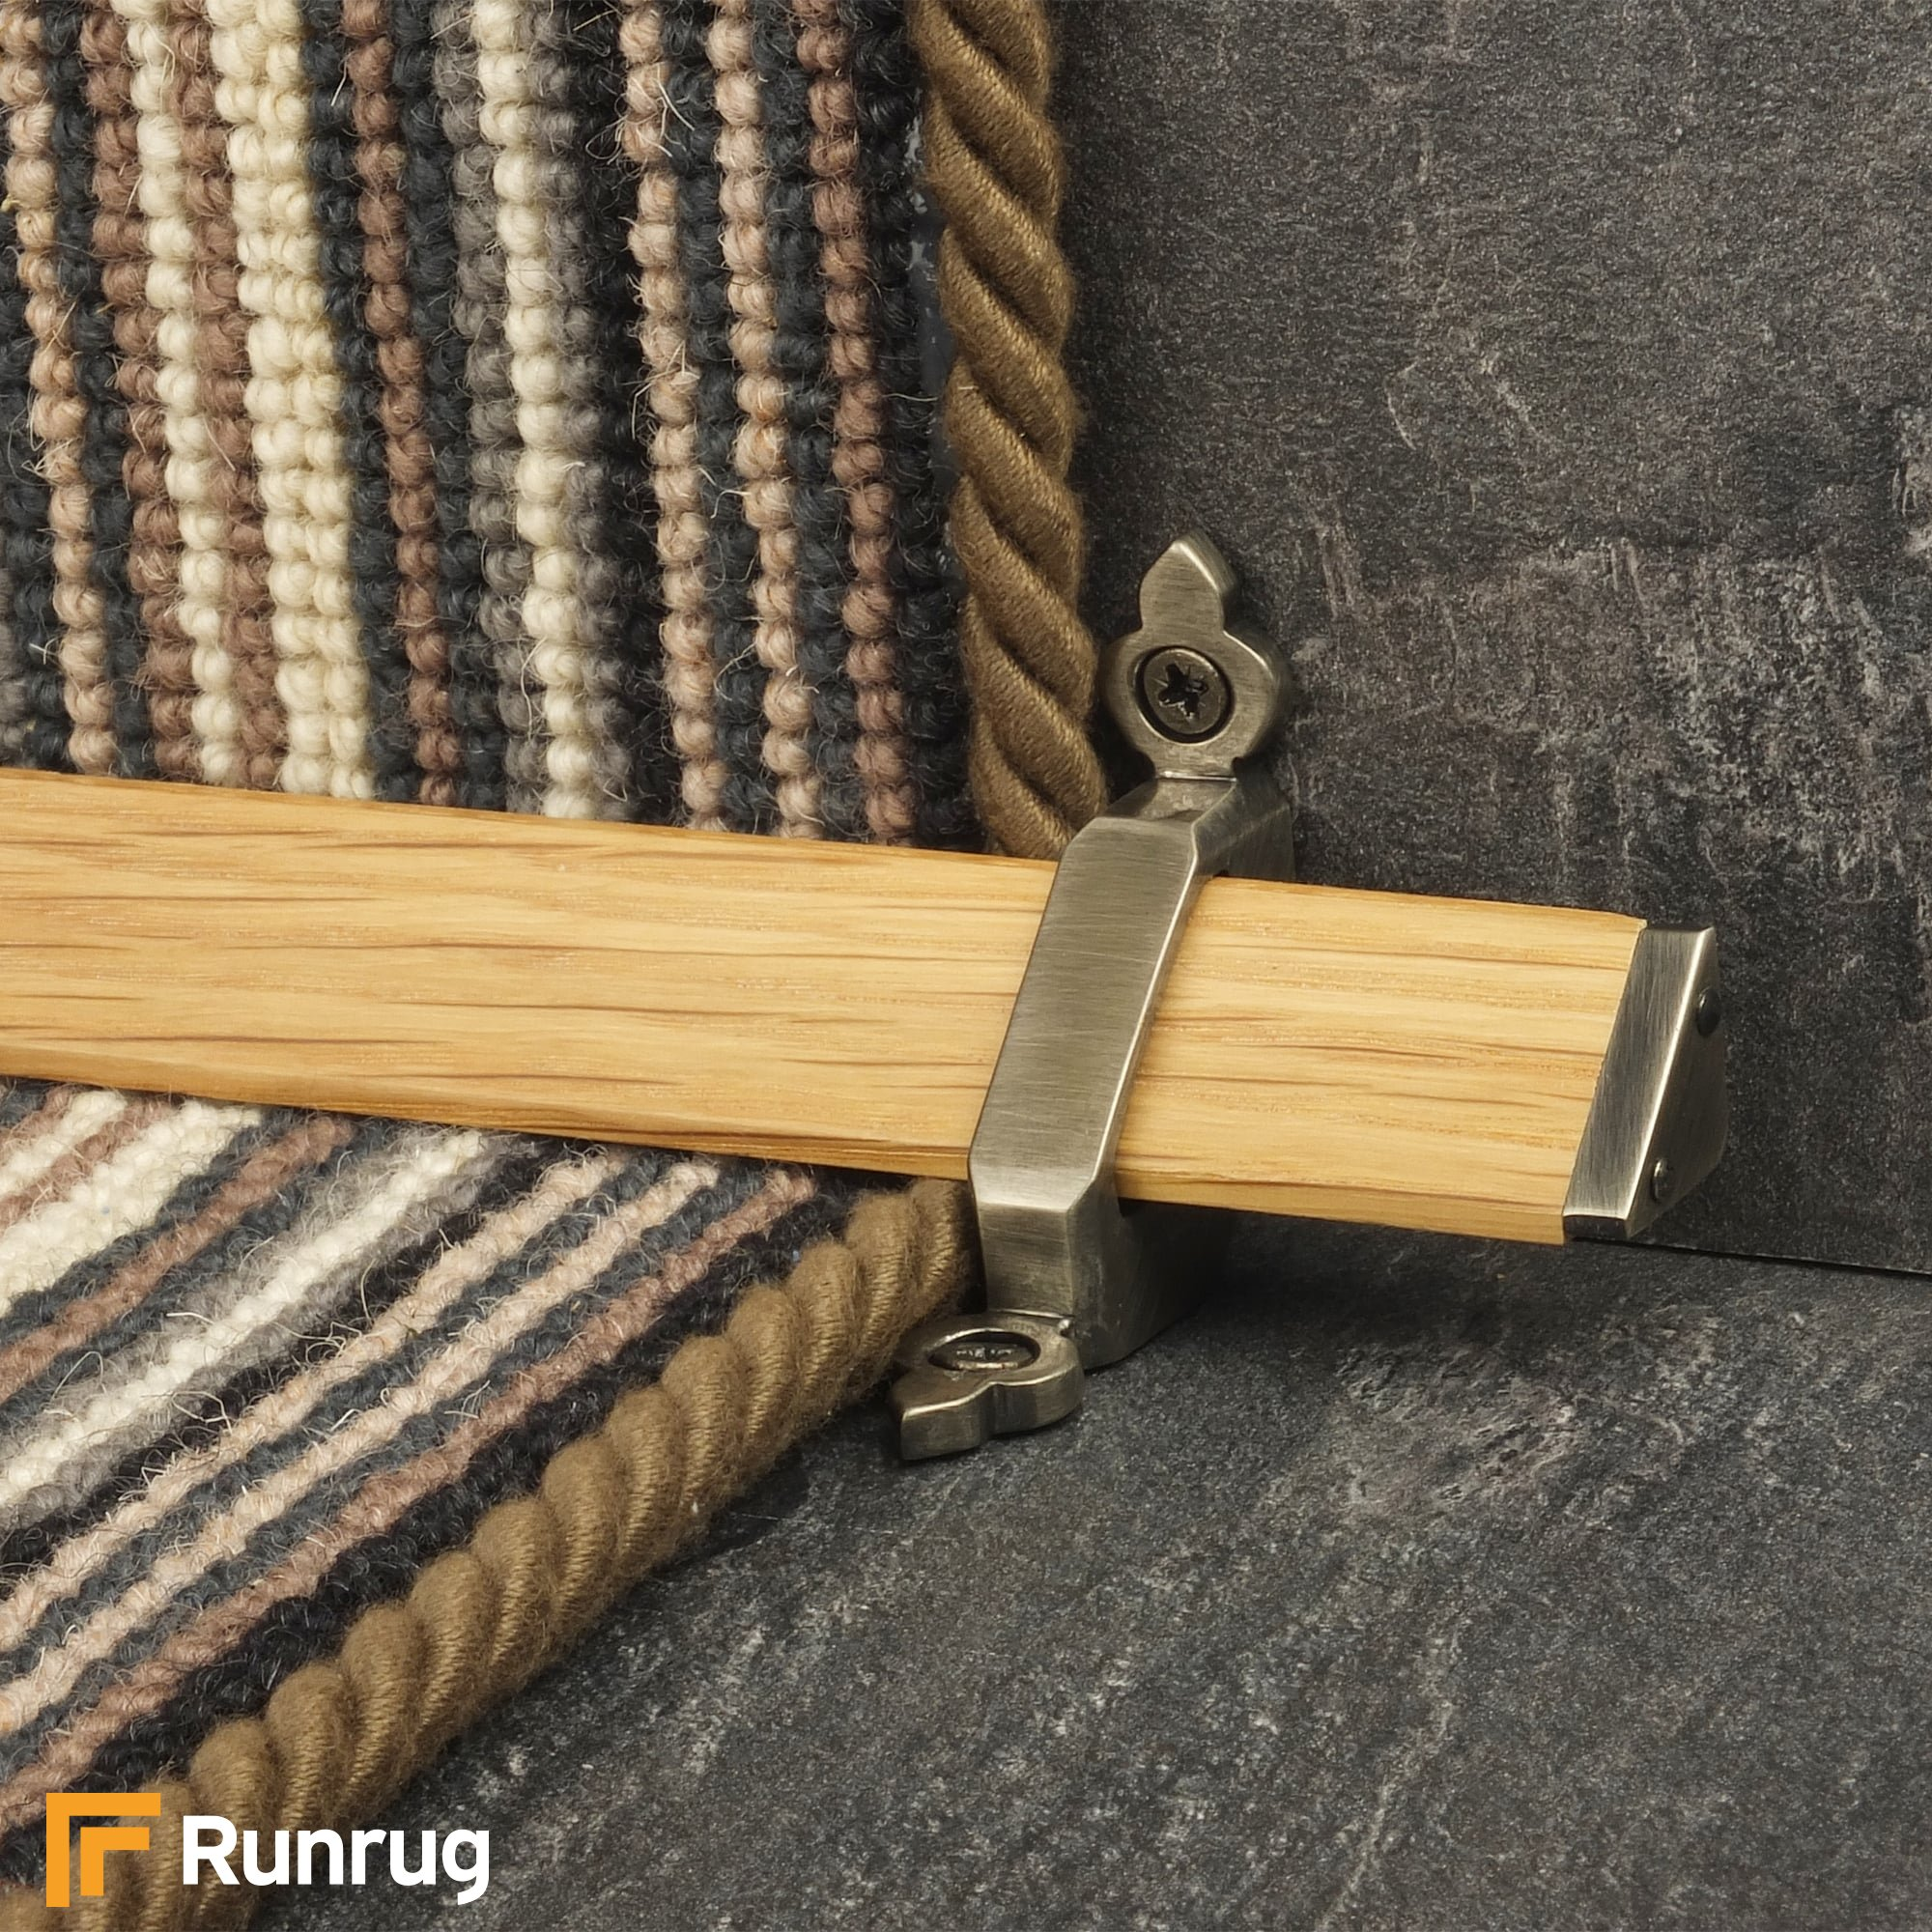 Stair Carpet Runner Rods   Tudor Pewter Finish Light Wood Stair Carpet  Runner Rods